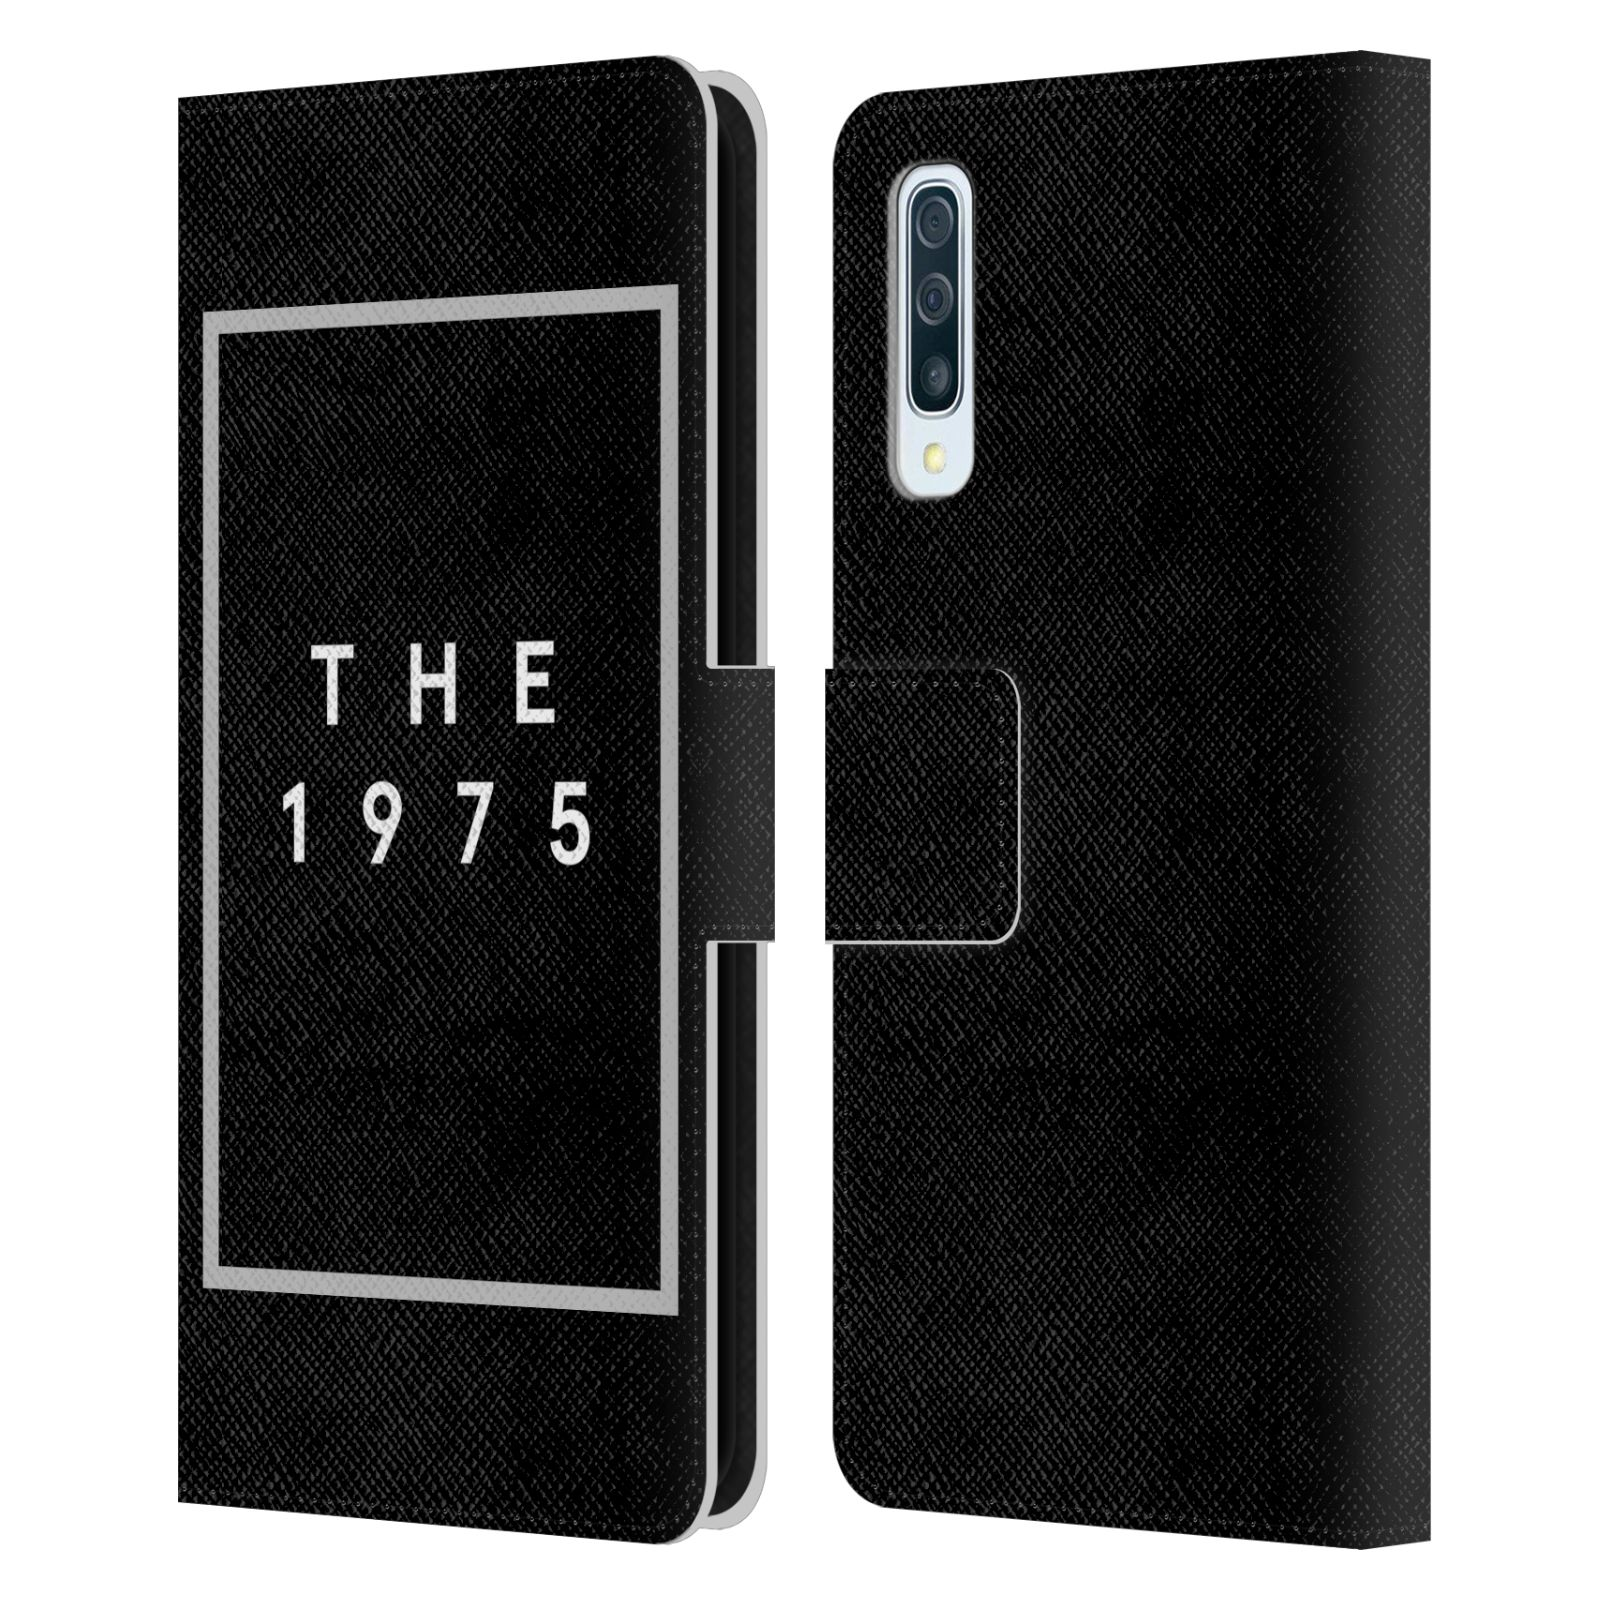 Official The 1975 Key Art Logo Black Leather Book Wallet Case For Samsung Galaxy A50/A30s (2019)